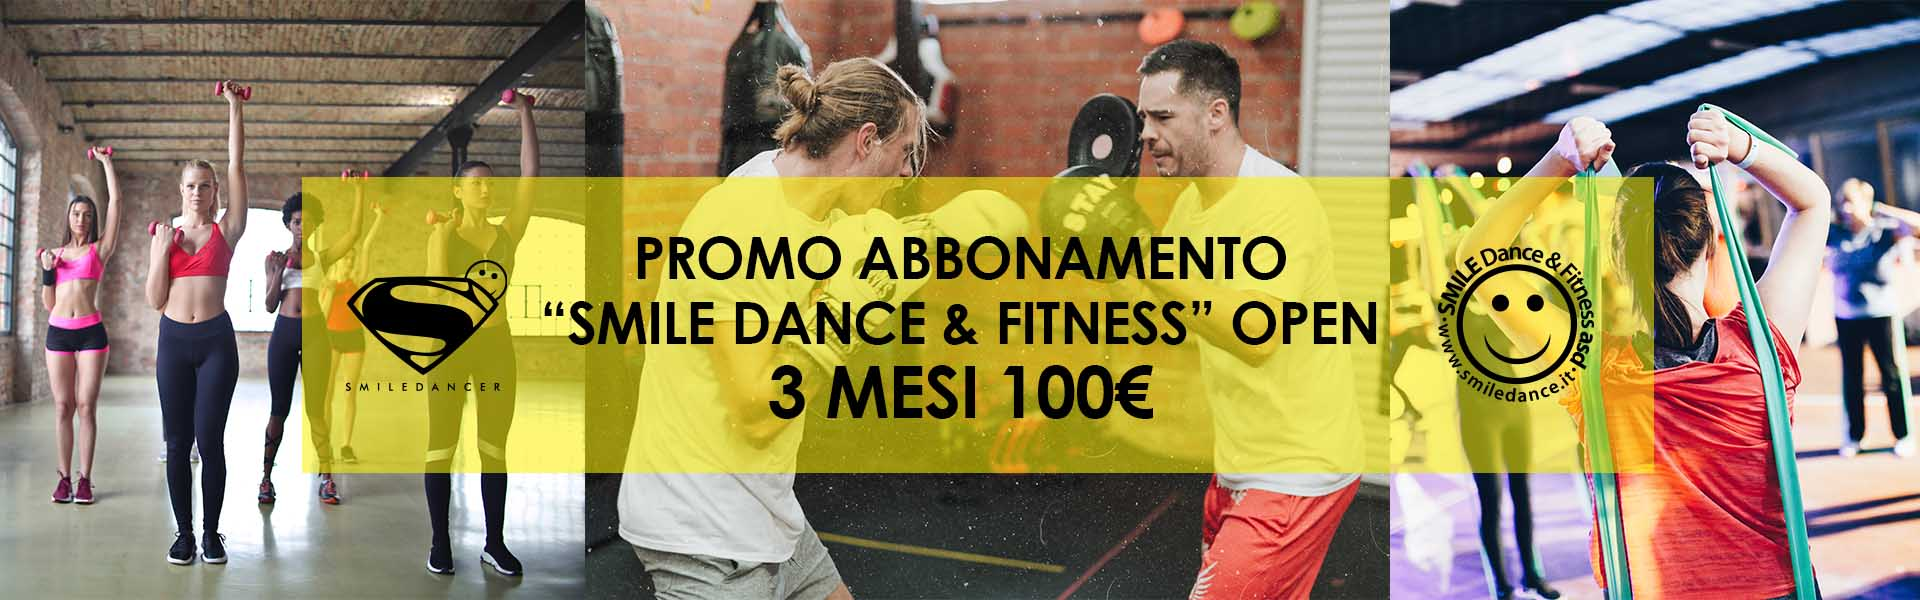 smiledance & fitness promo 3 mesi